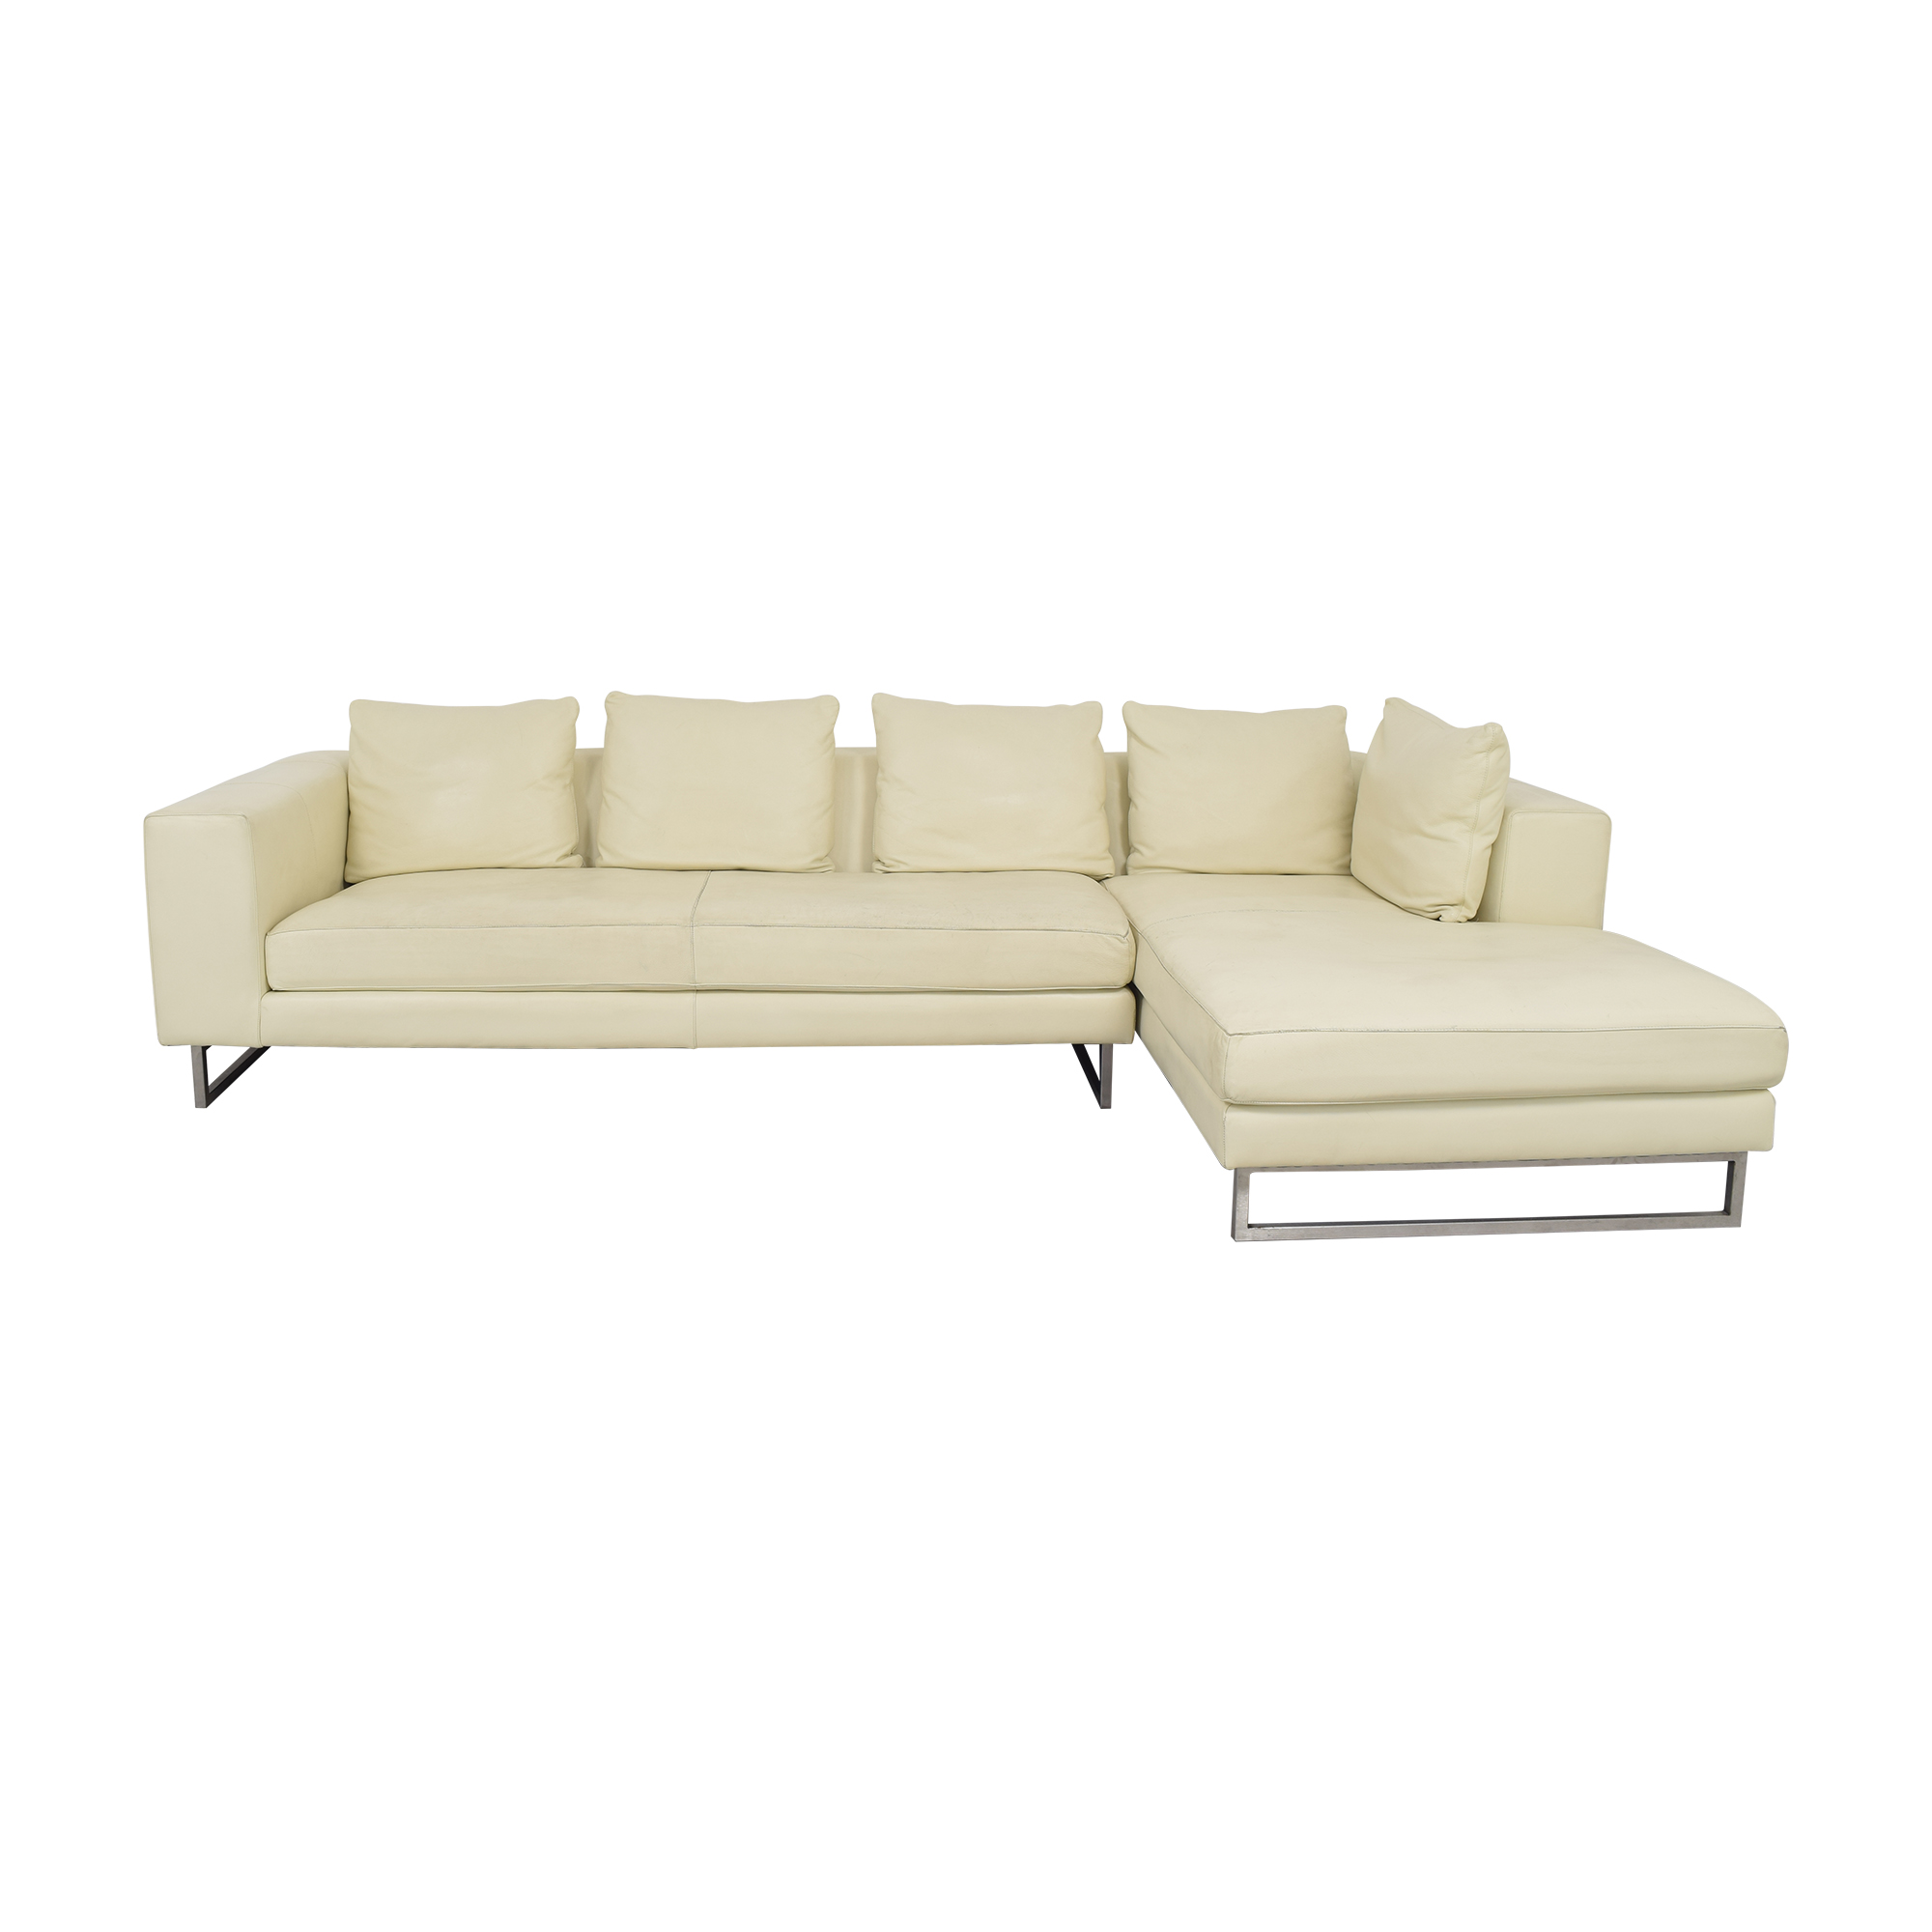 Maurice Villency Maurice Villency Freestyle Chaise Sectional Sofa cream